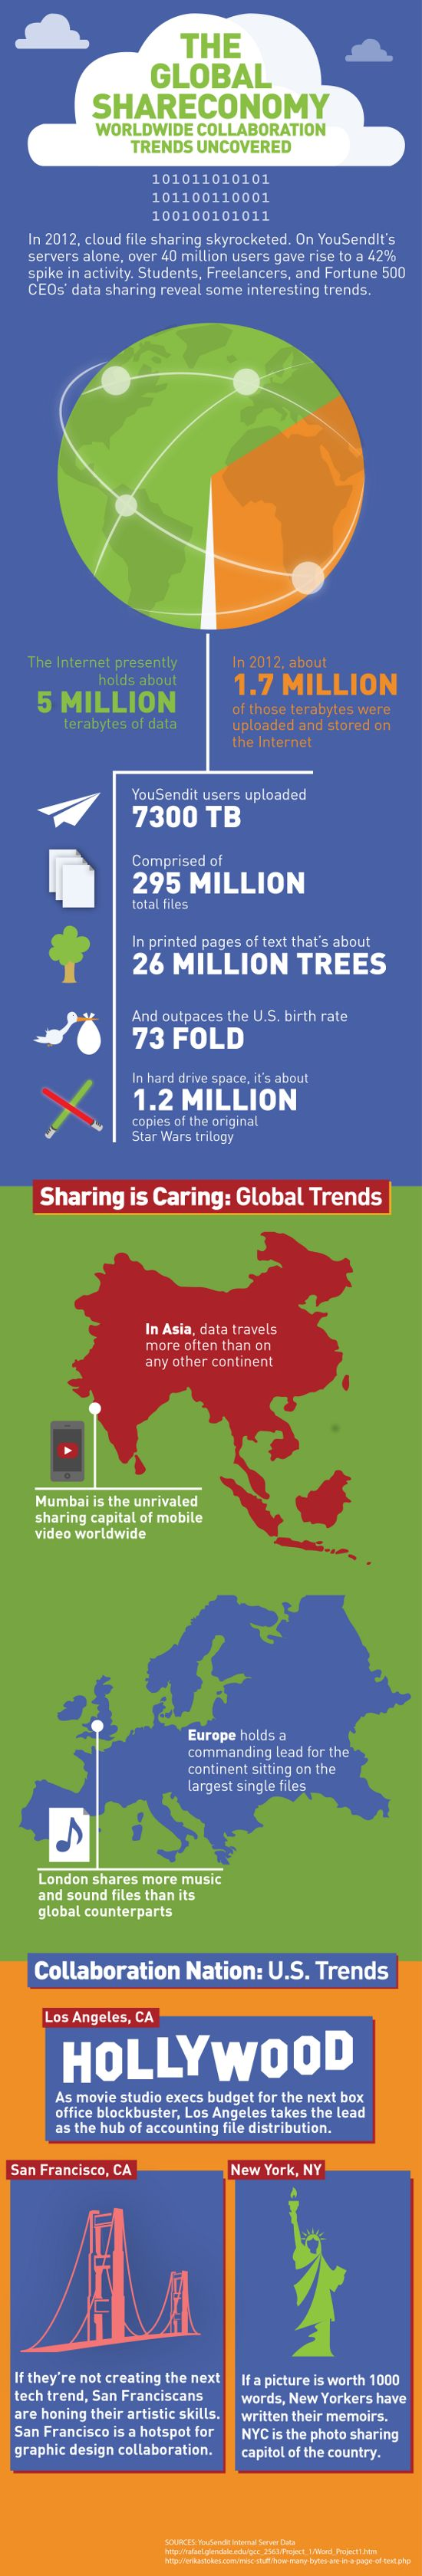 "The Global Shareconomy Uncovered (Infographic) ""Shareconomy"" may sound like a softer, gentler form of Communism, but this hardly-necessary hybrid of ""share"" and ""economy"" actually describes how the world's economic model is shifting from one based on ownership to one based on sharing."